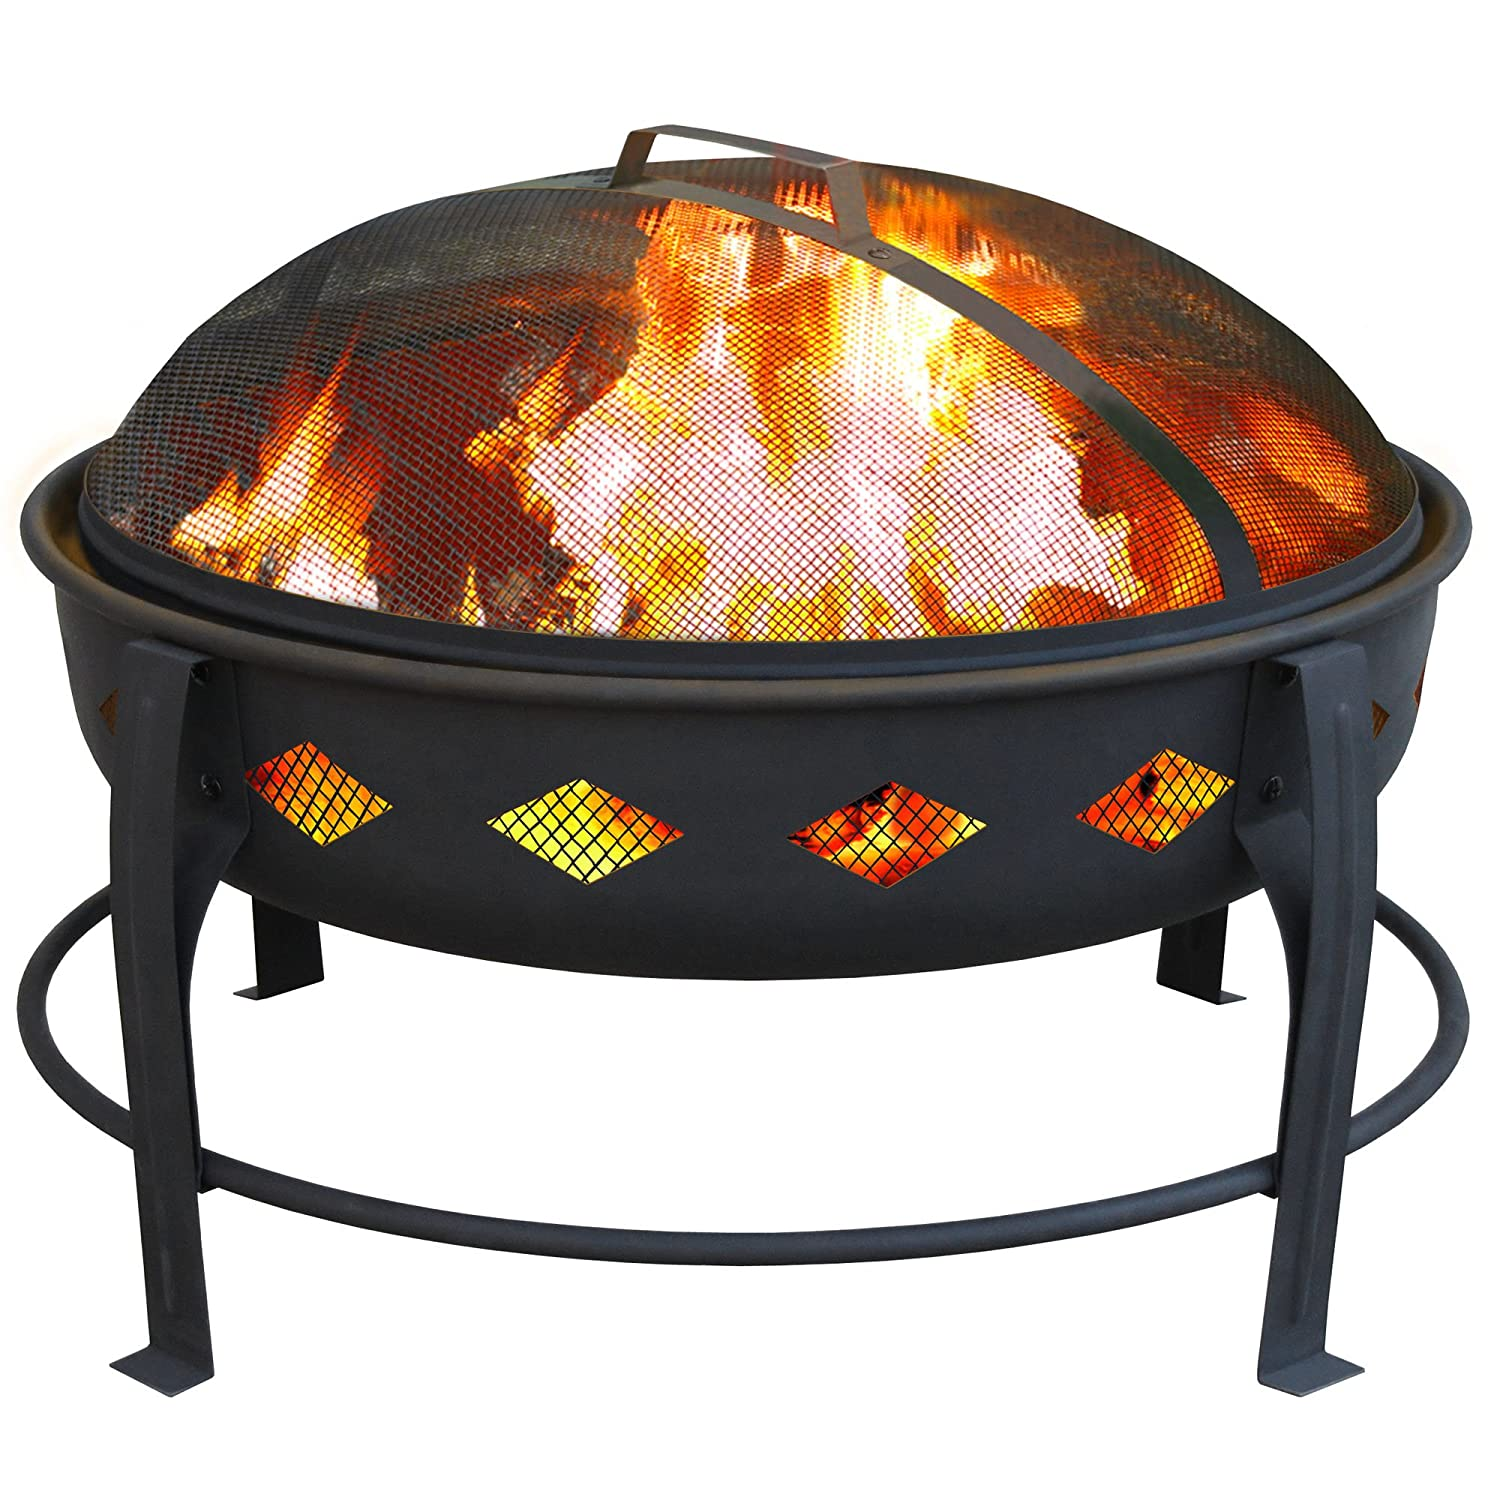 Landmann USA Bromley Fire Pit, Black 21860